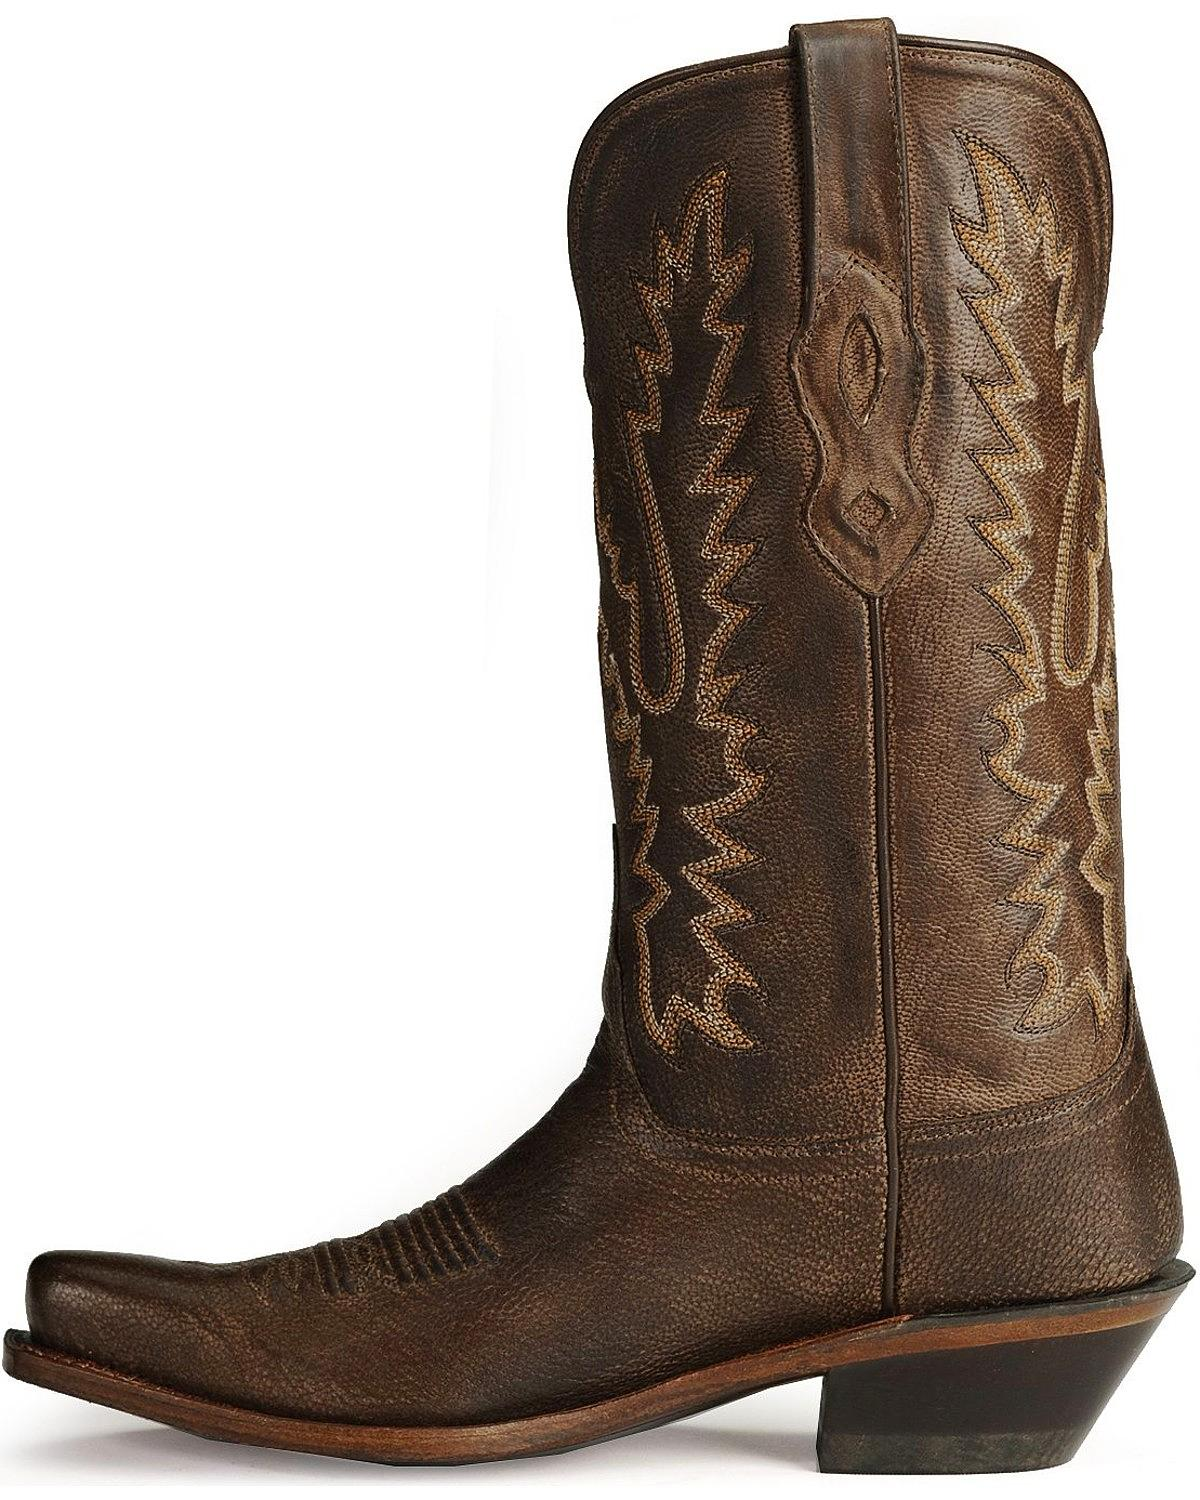 Old West Distressed Leder Cowgirl Boot Toe  - Snip Toe Boot - LF1534 86de0b